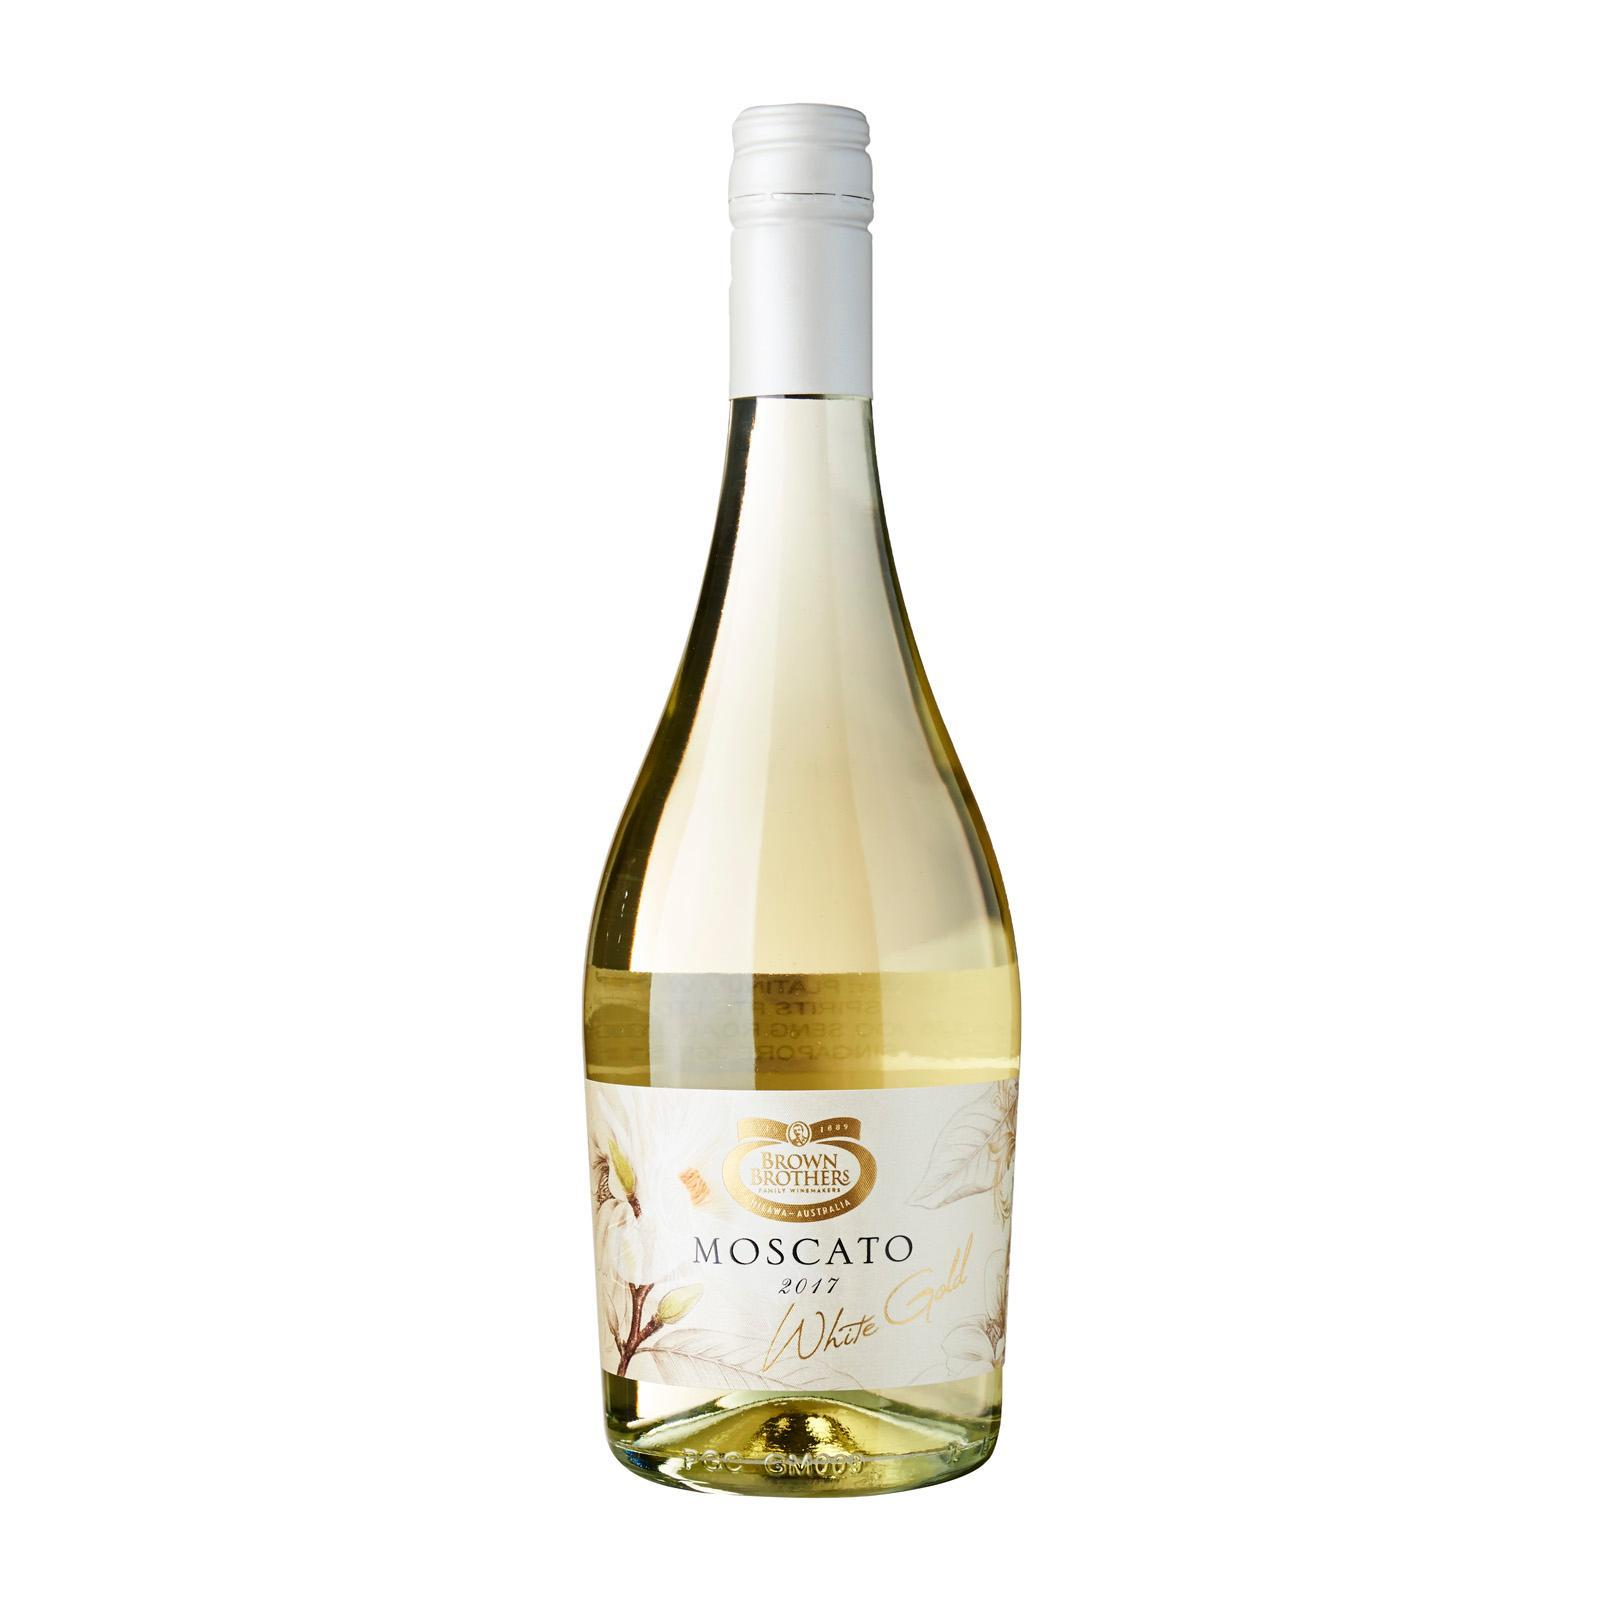 Brown Brothers Moscato White Gold - By Three Kraters